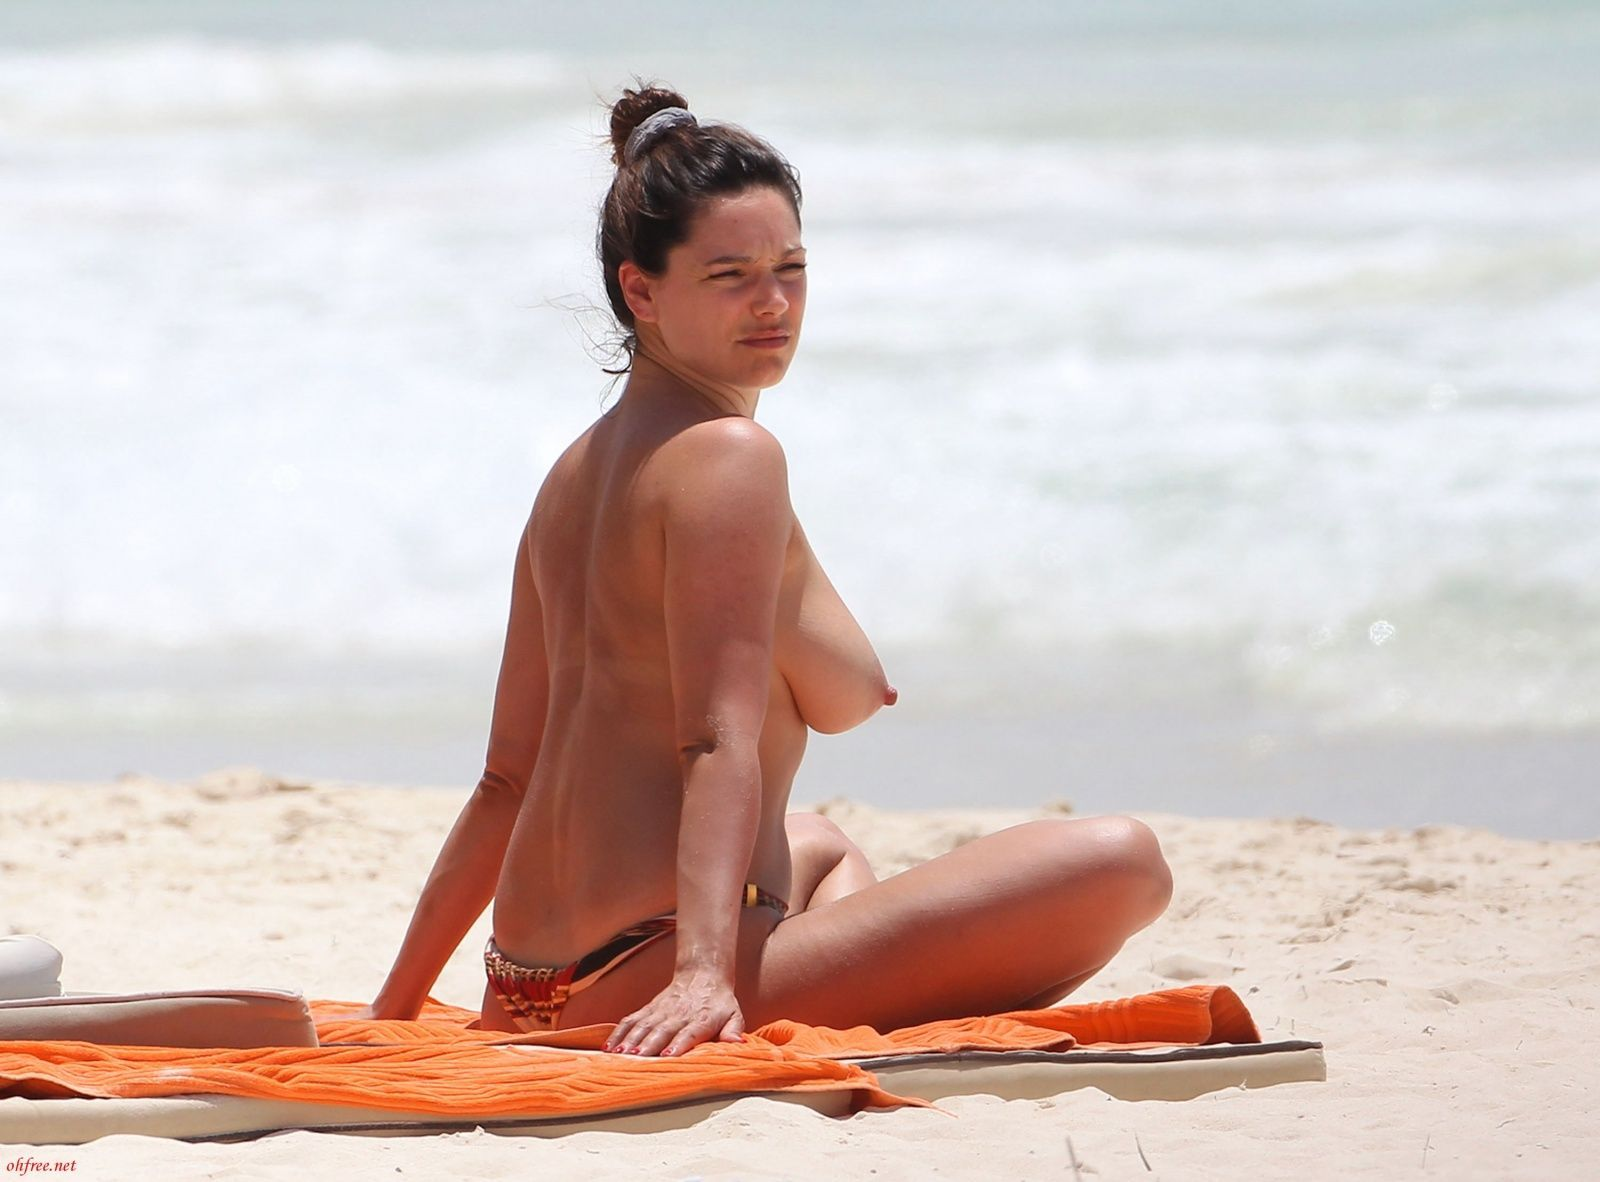 best of Mexico nudist Cancun